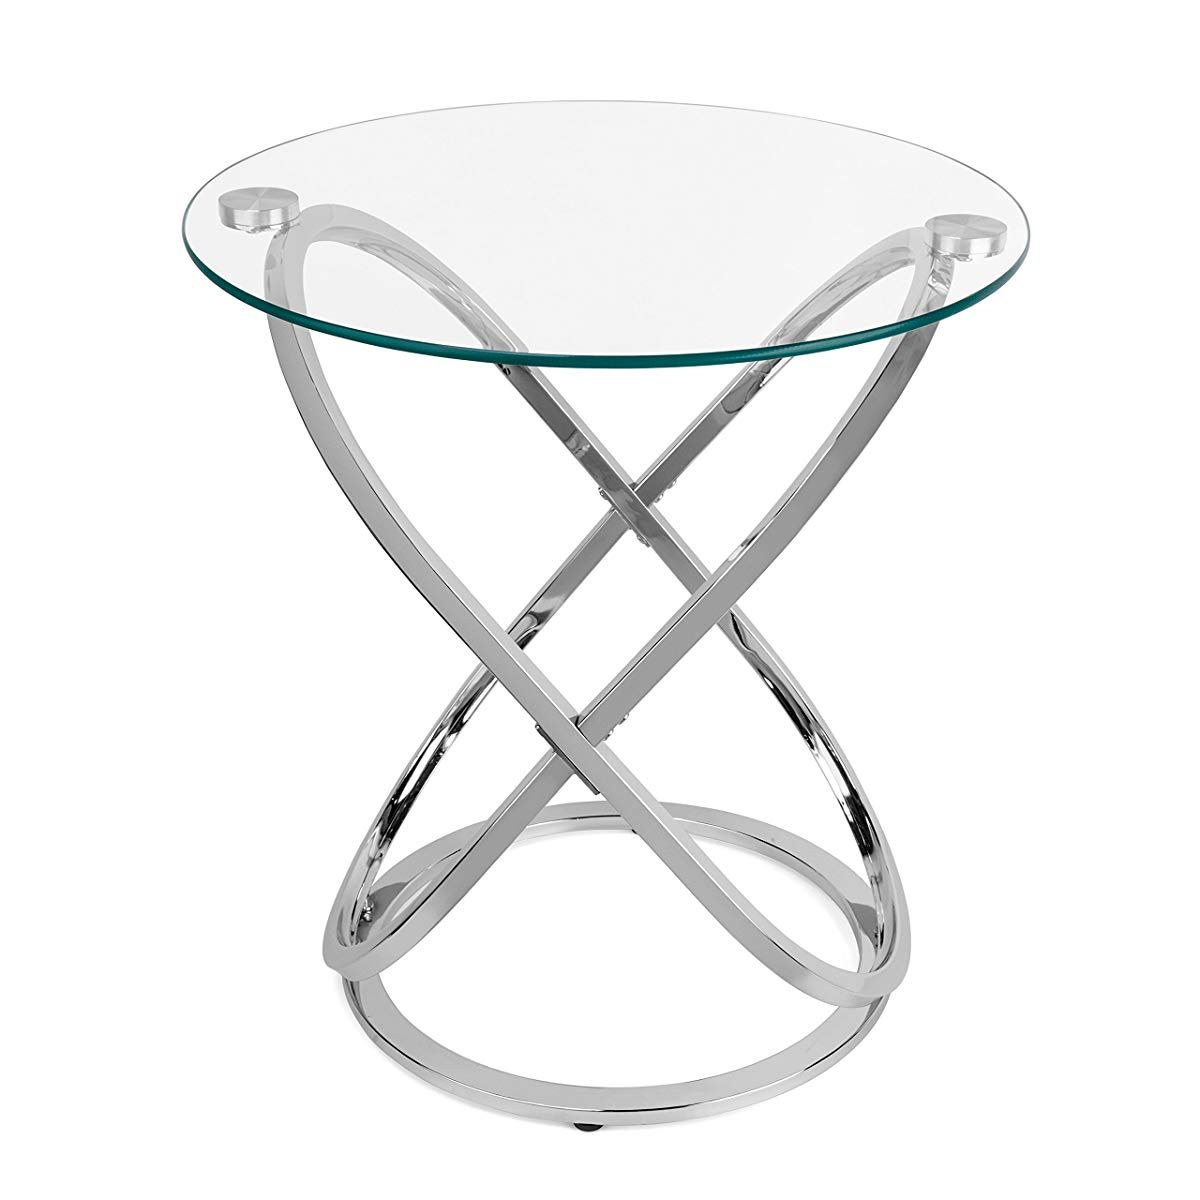 glass round end table silver side accent pier one wicker furniture bronze kitchen sets for desk behind couch ashley carlyle coffee battery powered house lights small white with